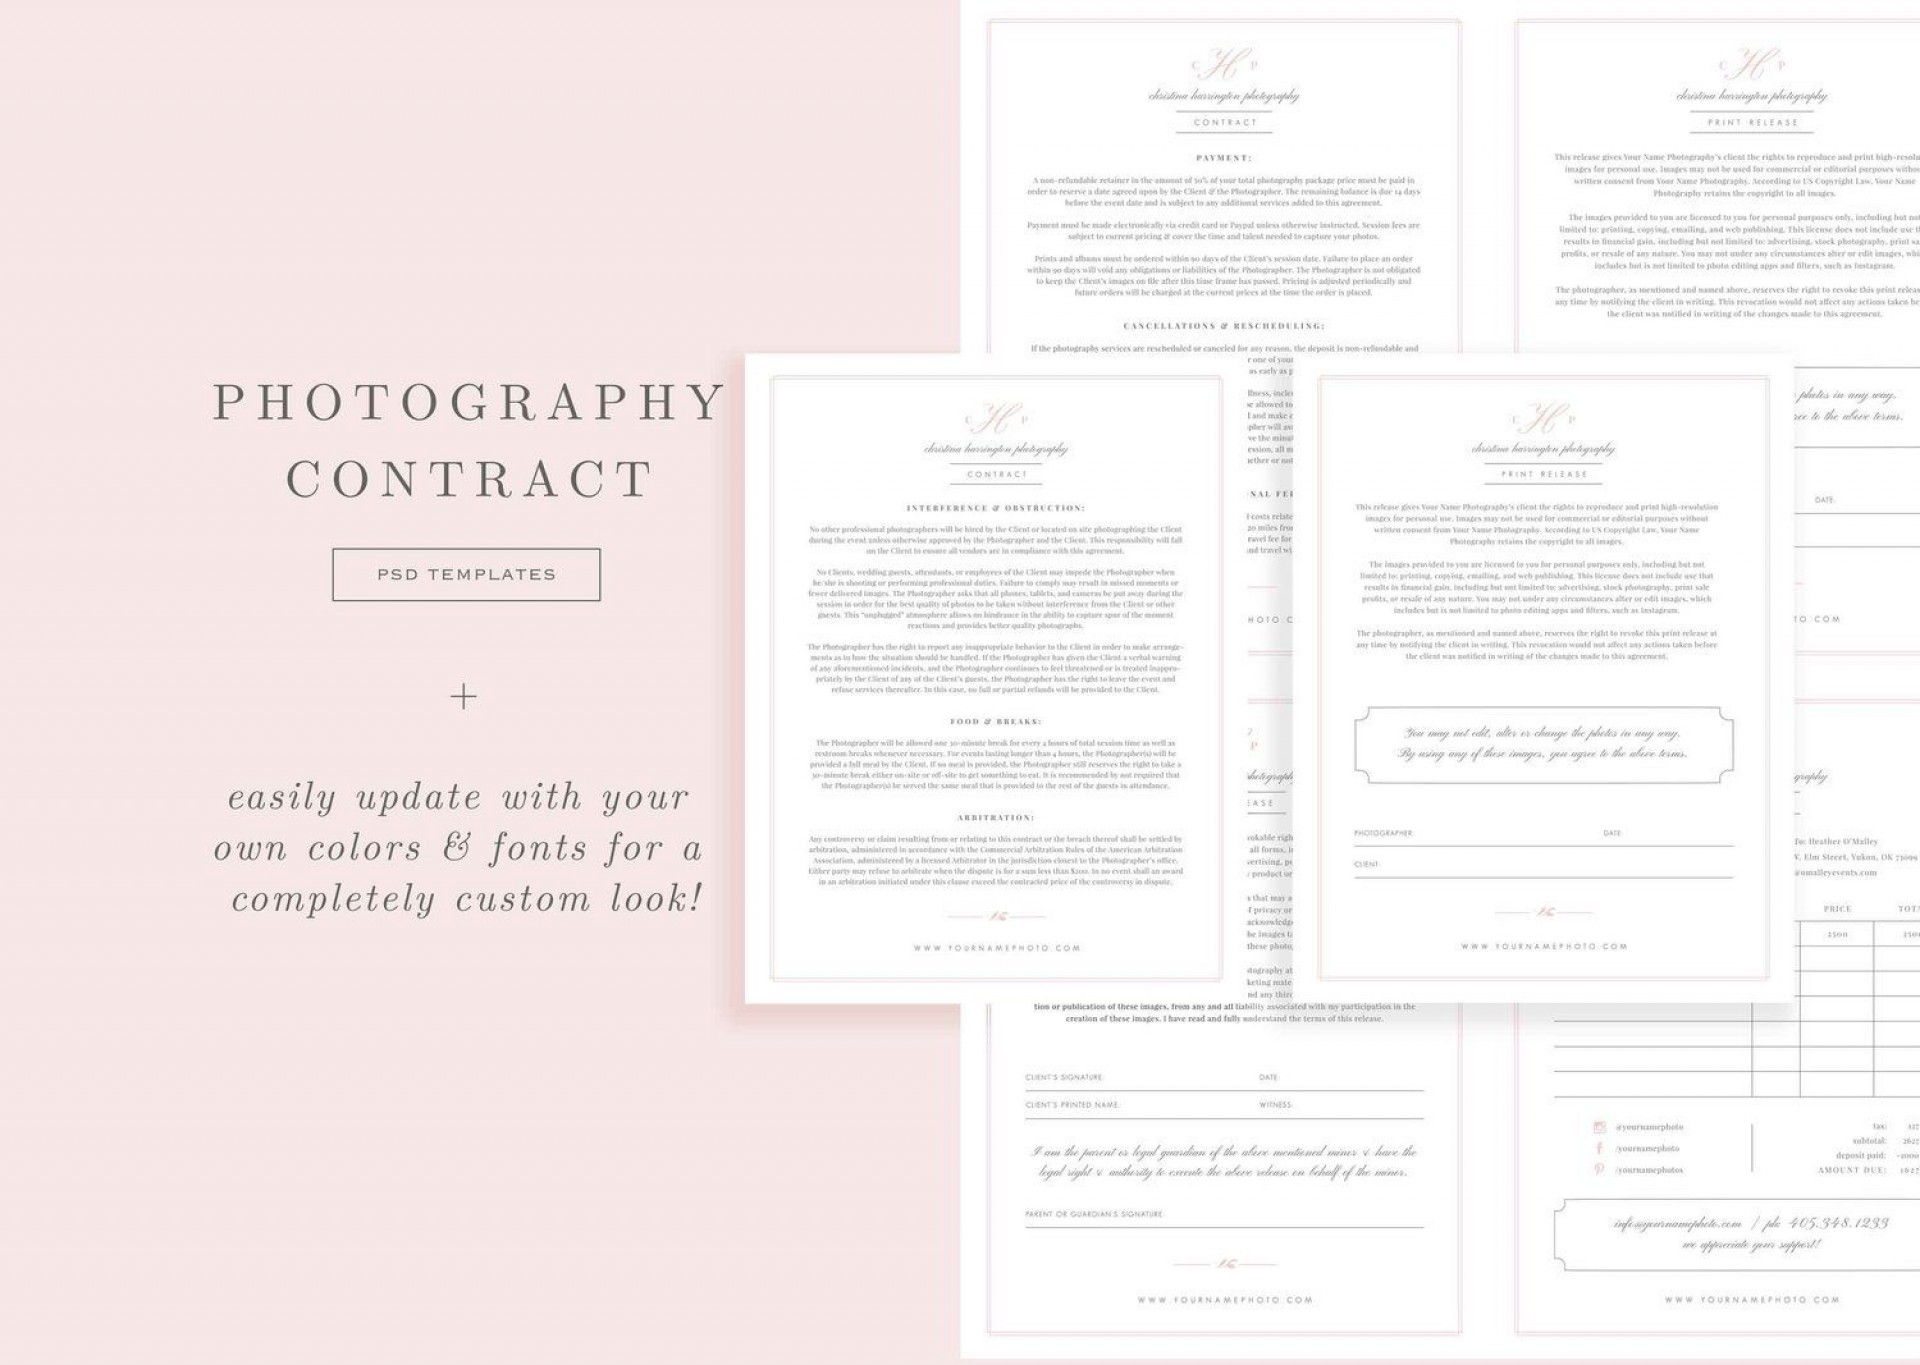 009 Singular Wedding Photographer Contract Template Free Highest Clarity  Simple Photography Word1920